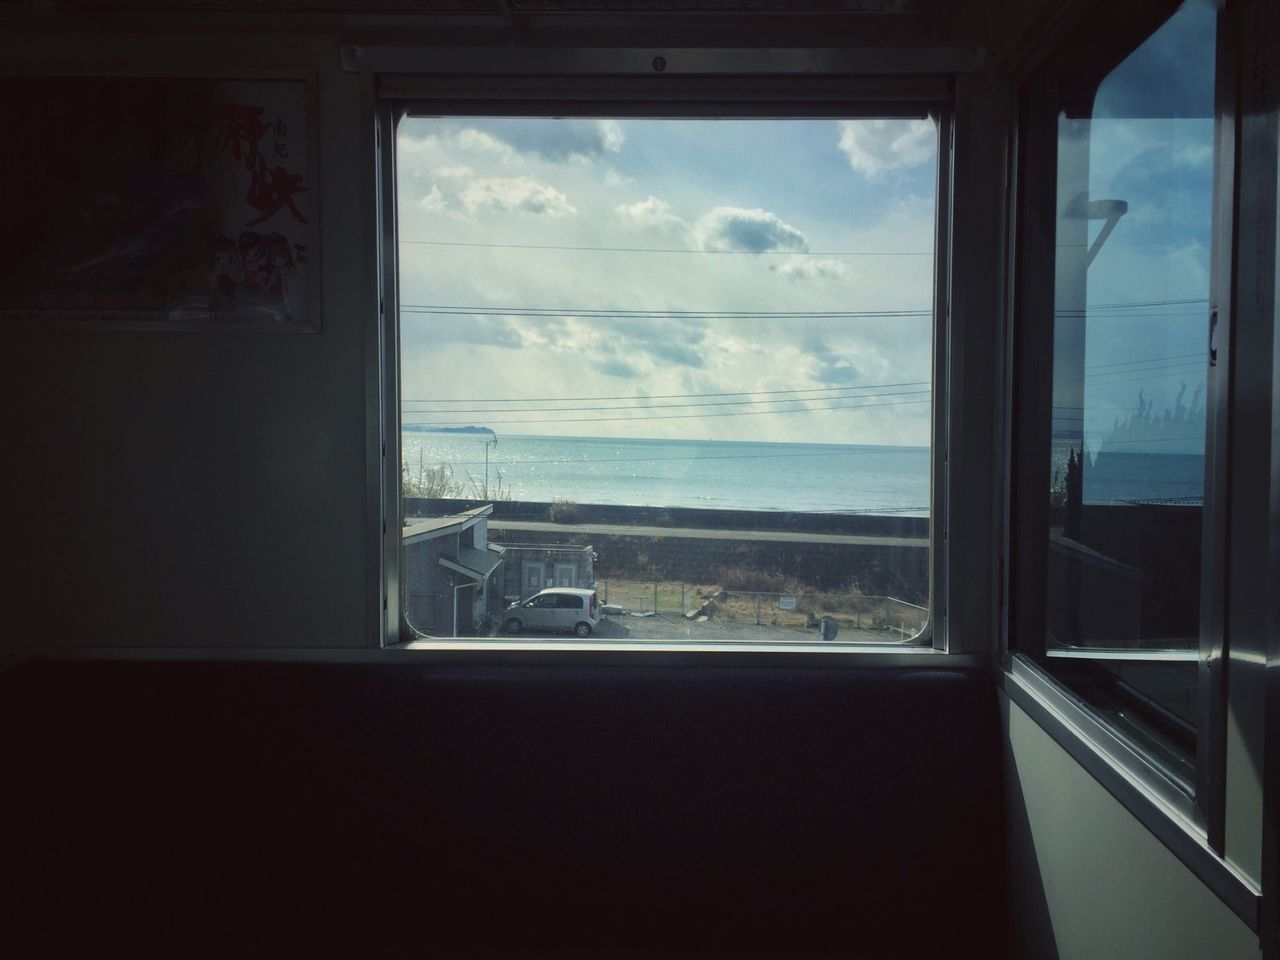 window, glass - material, transparent, sky, cloud - sky, sea, indoors, no people, water, nature, day, transportation, vehicle interior, glass, mode of transportation, horizon, sunlight, scenics - nature